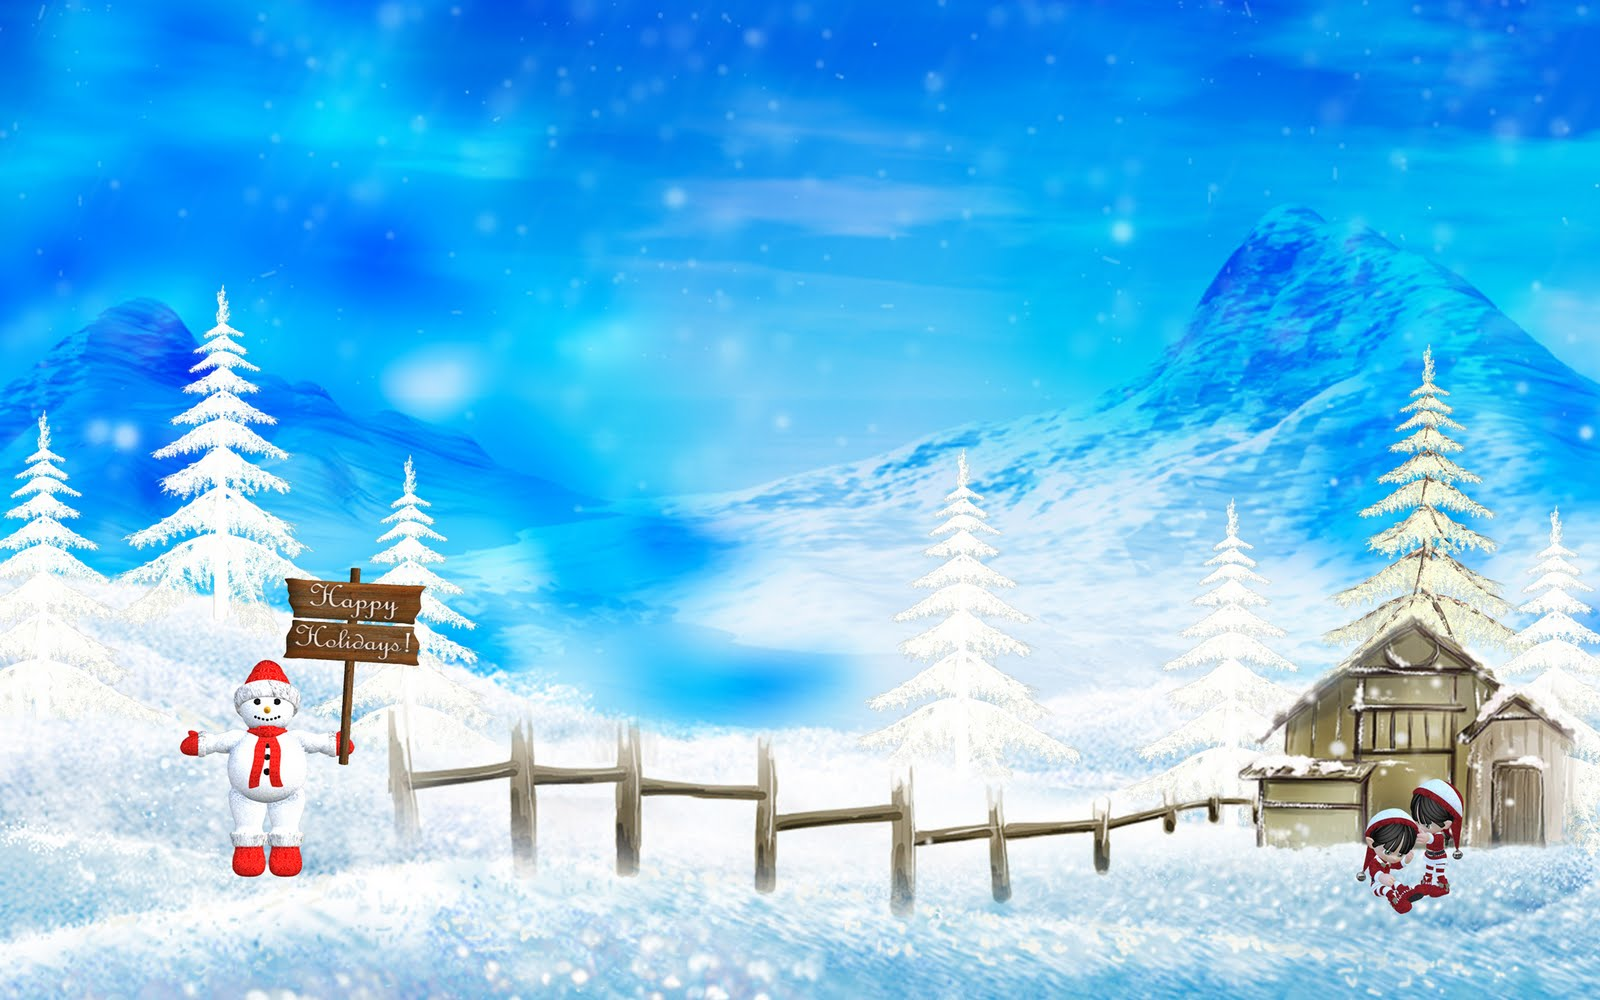 Download Beautiful Christmas snow wallpapers. Christmas snow wallpaper image